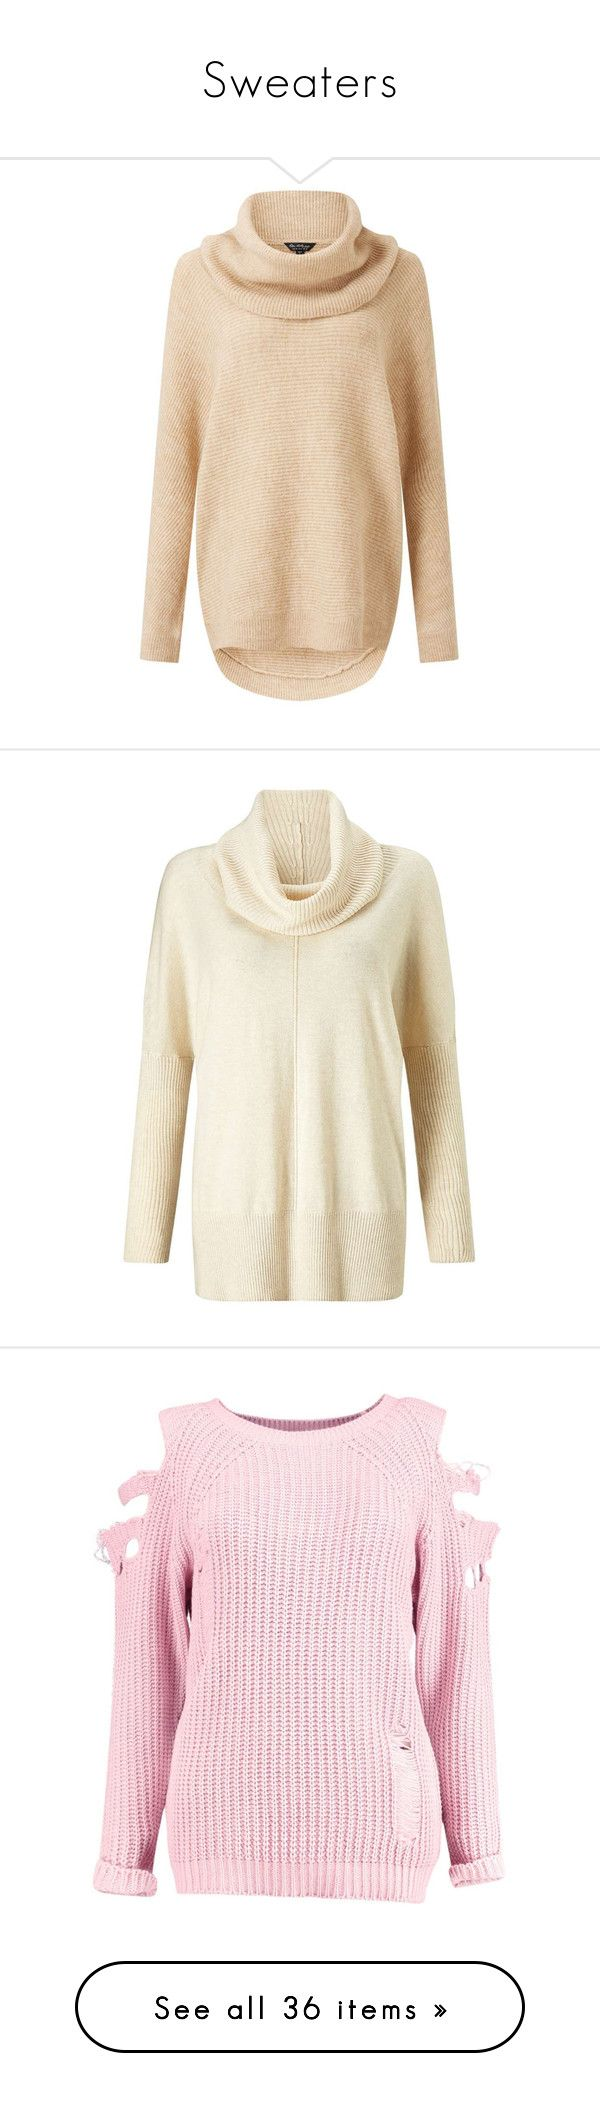 """""""Sweaters"""" by wanda-india-acosta ❤ liked on Polyvore featuring tops, sweaters, camel, camel cowl neck sweater, camel sweater, miss selfridge, beige top, cowl neck sweater, cream and cream cowl neck sweater"""